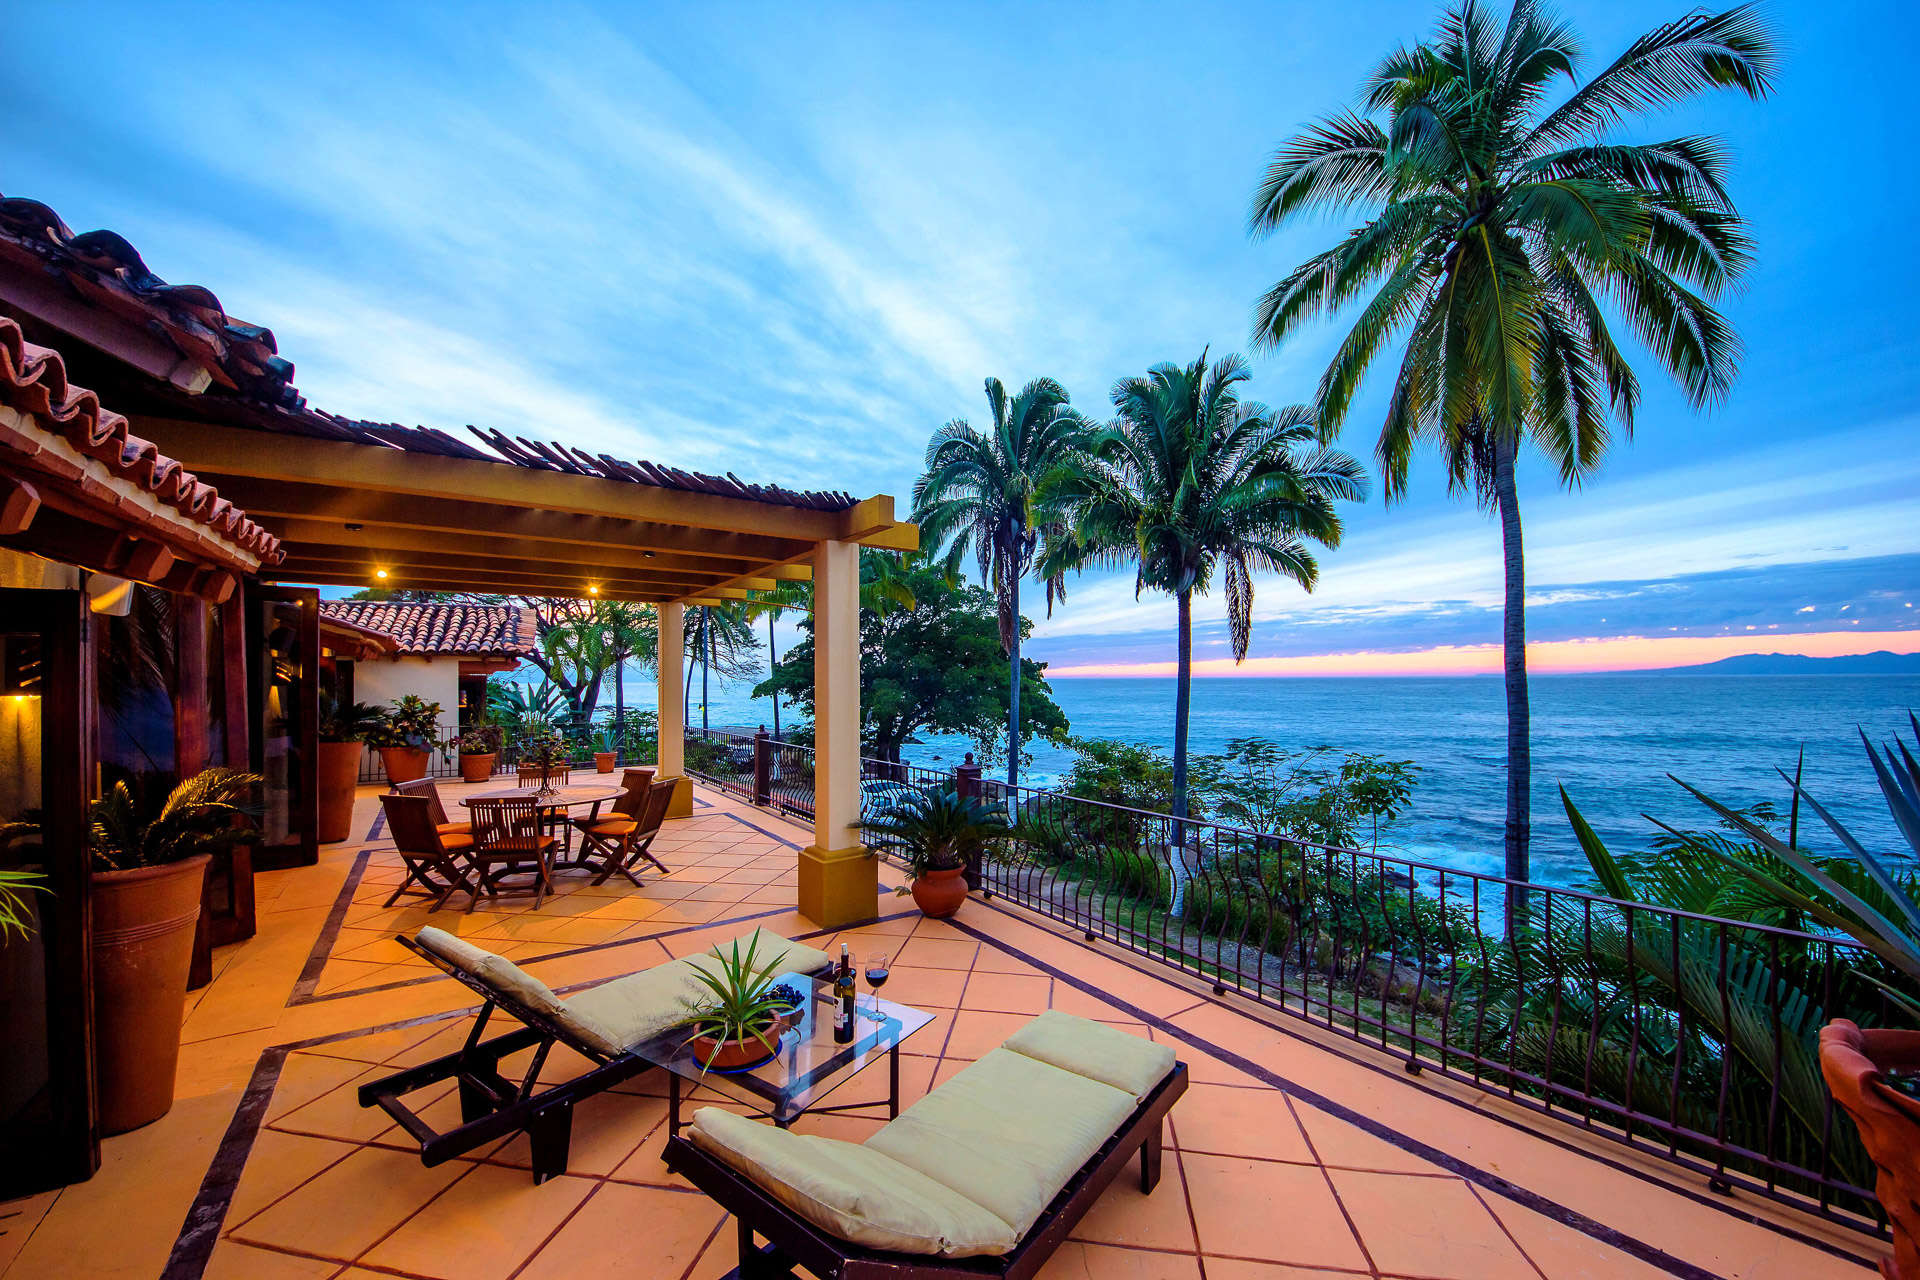 Luxury vacation rentals mexico - Puerto vallarta - Conchas chinas - No location 4 - Casa las Amapas - Image 1/17